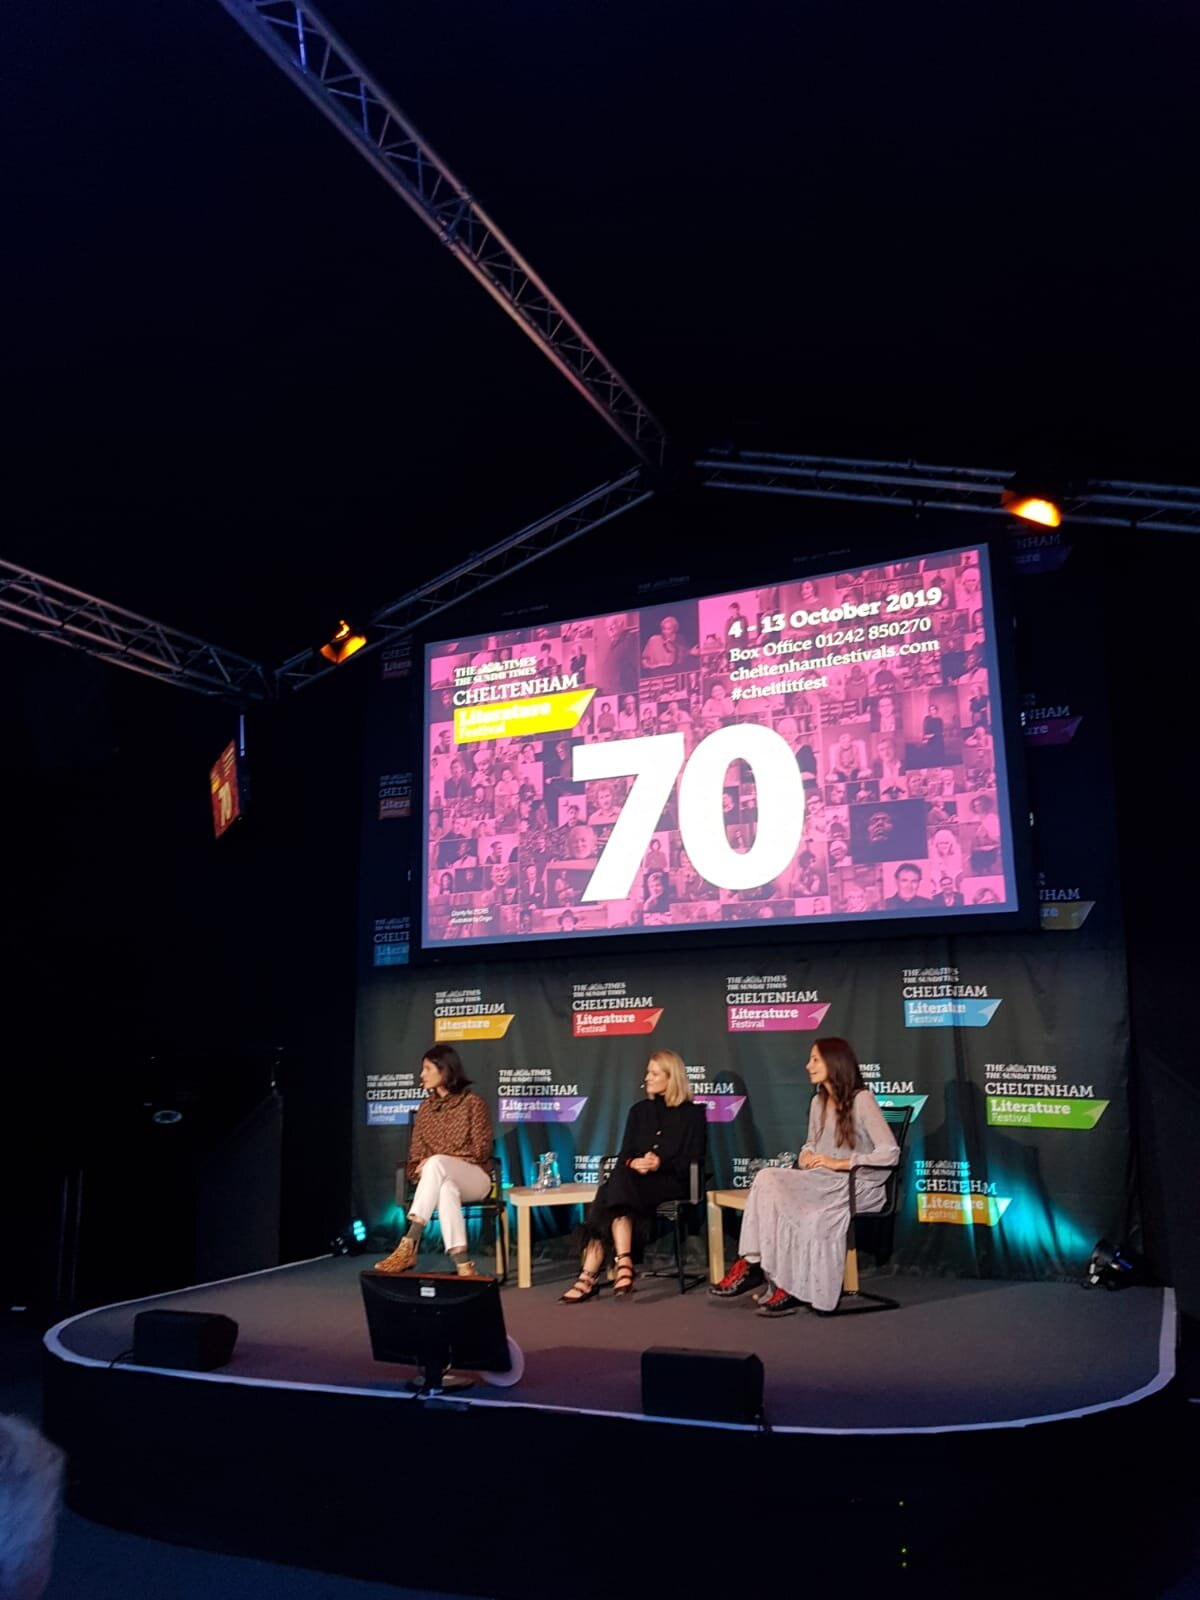 """You'Re Not Broke, You'Re Pre-Rich @ Cheltenham Literature festival 2019 with Emilie Bellet and Alex Holder - Sat 12 Oct 4pmThank you Cheltenham Festivals for your invitation to speak about my book """"You're not broke, you're pre-rich"""" on Saturday.I loved talking about money with the amazing Alex Holder and Sarah Raphael ✨. Thank you to everyone who came and bought our books too 💛!EmilieFrom friendships, to ambitions, to mental health, money plays a huge role in our lives, yet we're often too polite or embarrassed to talk about it. Alex Holder (Open Up) and Emilie Bellet speak to Sarah Raphael about debunking the financial jargon and breaking the money taboo. Full of sympathetic, practical advice on everything from mindful spending and finding financial freedom, they will strip away the awkwardness to help you find the power and solidarity of talking about money."""